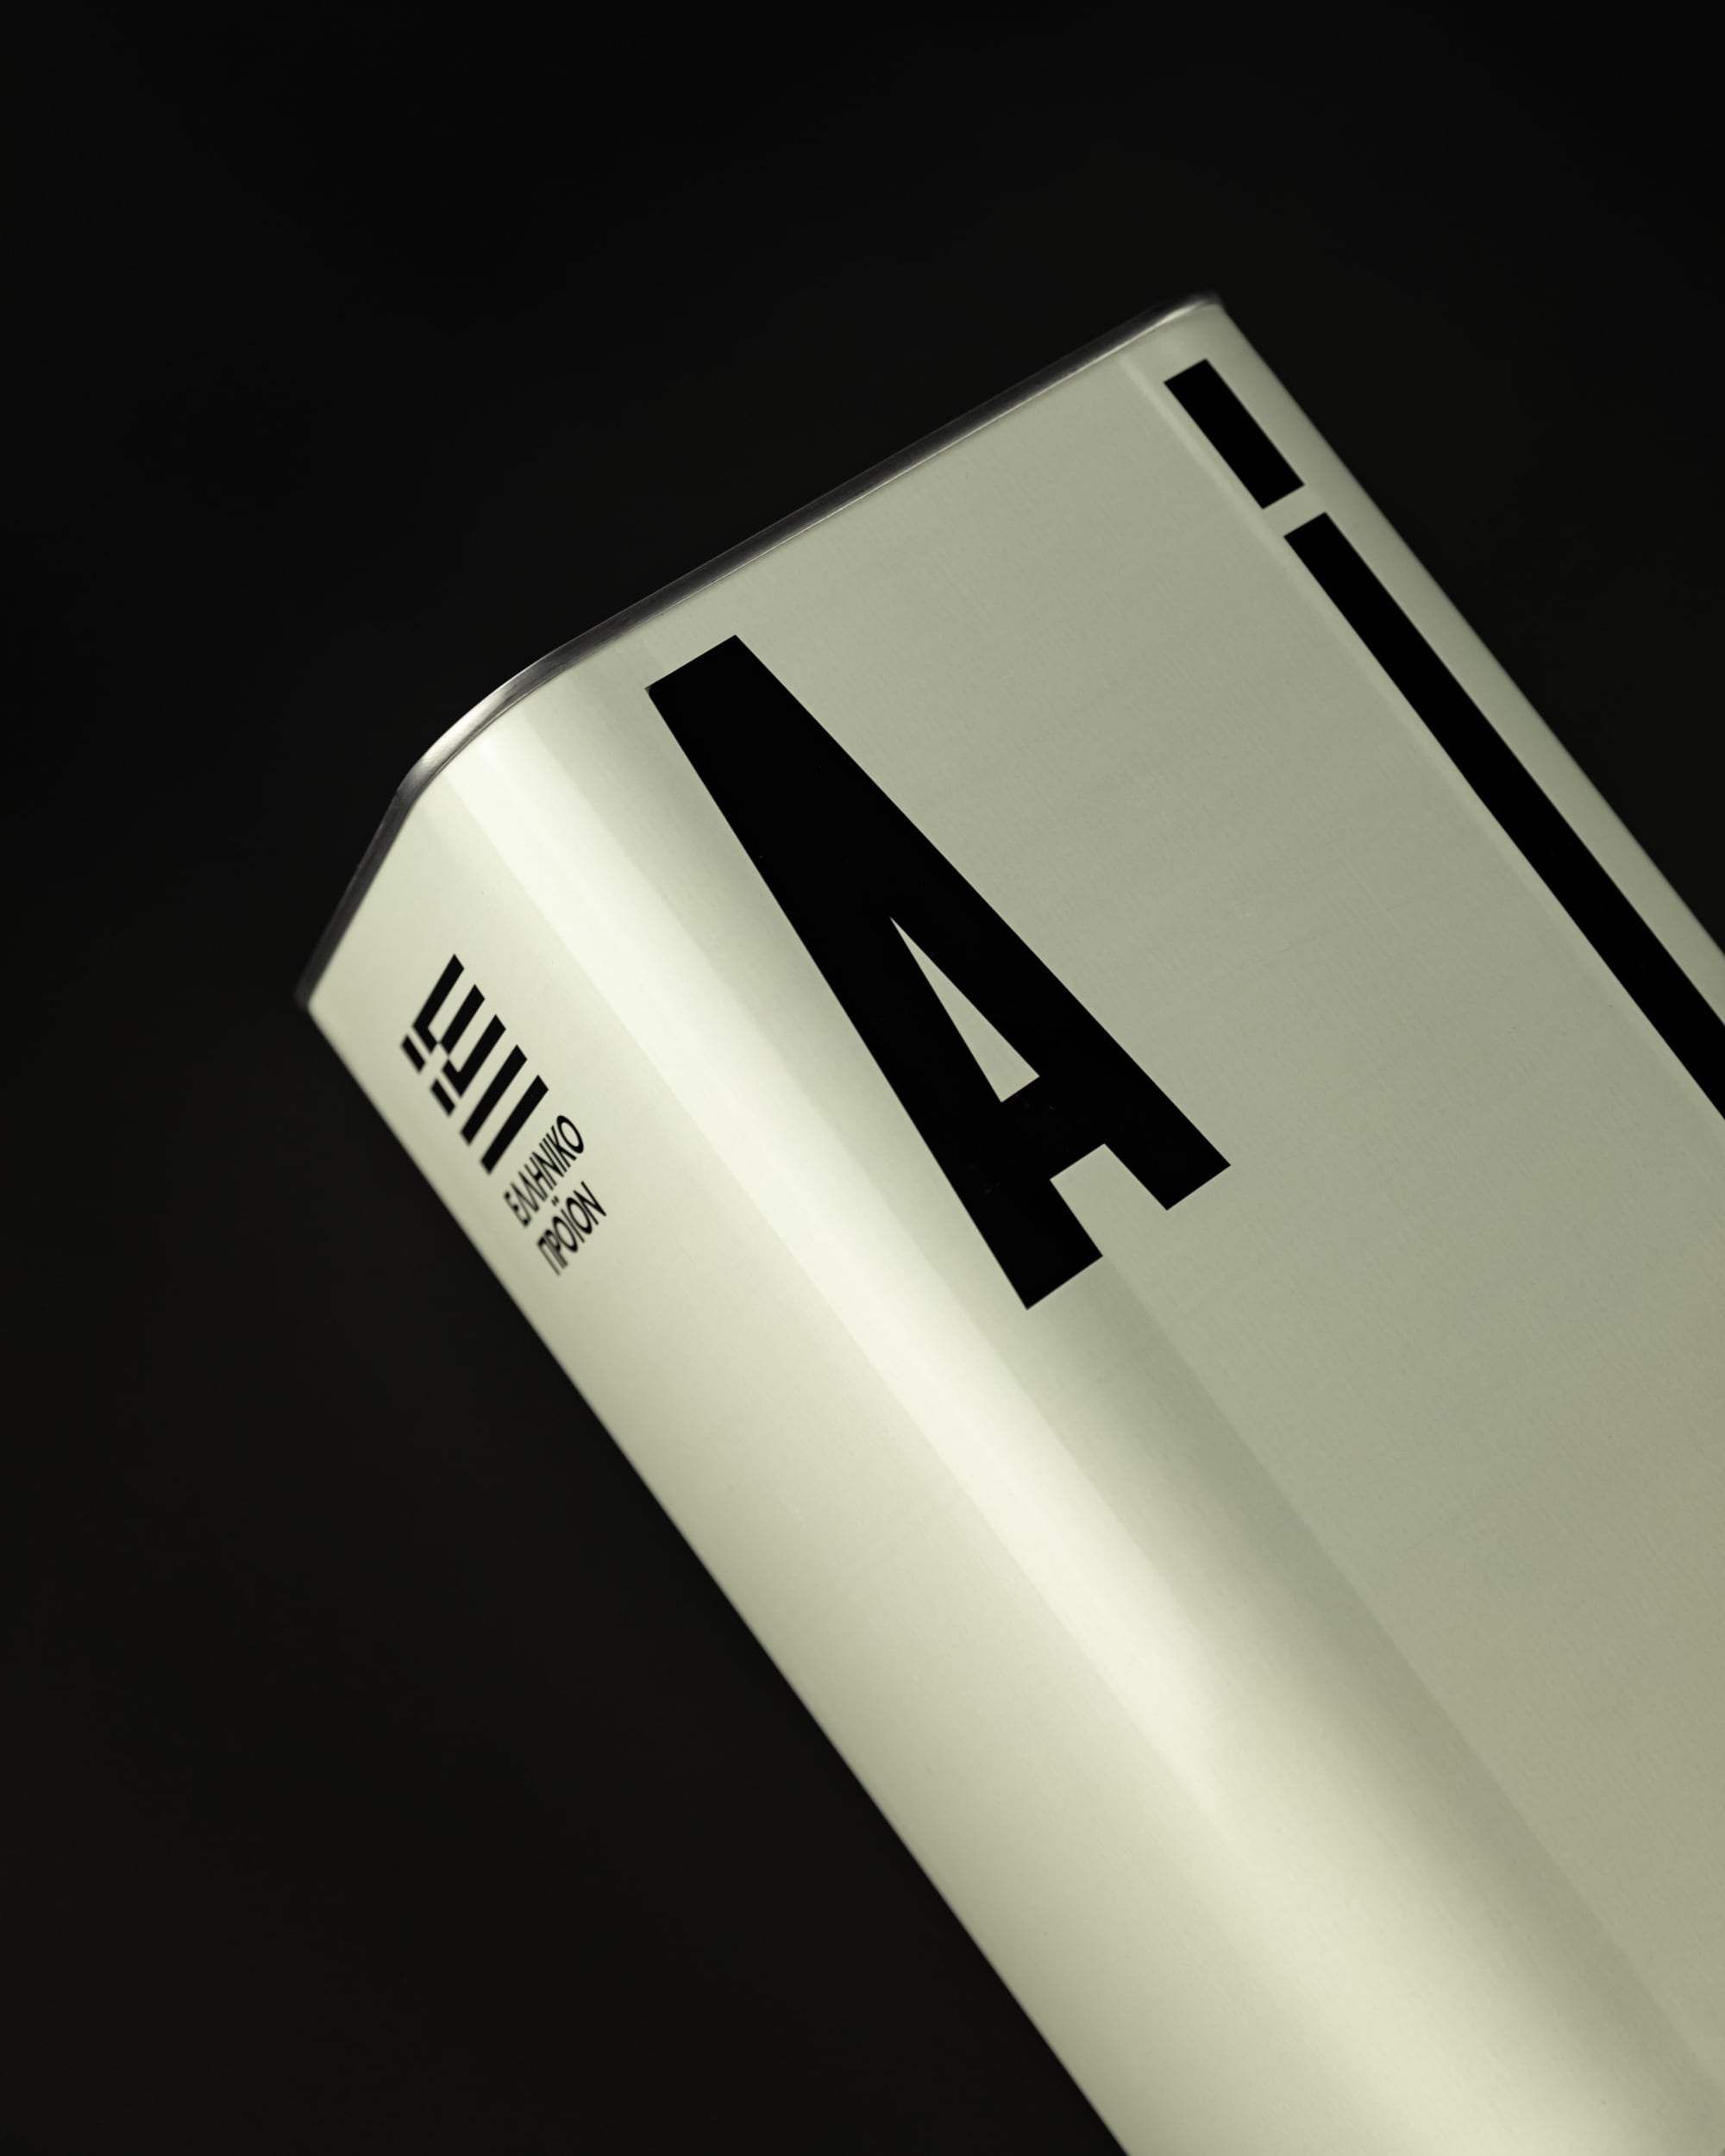 Detail of the 1000ml A! canister against a black background.